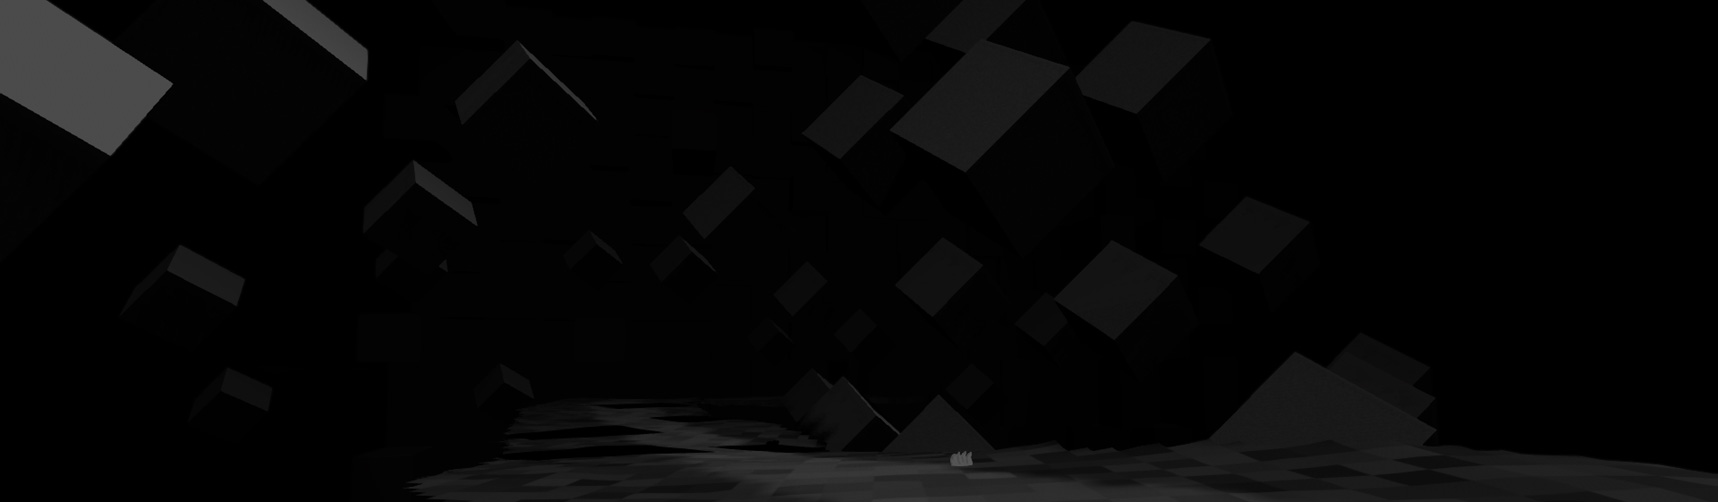 An abstract dark floating road with shadowed cubes surrounding the road on all sides